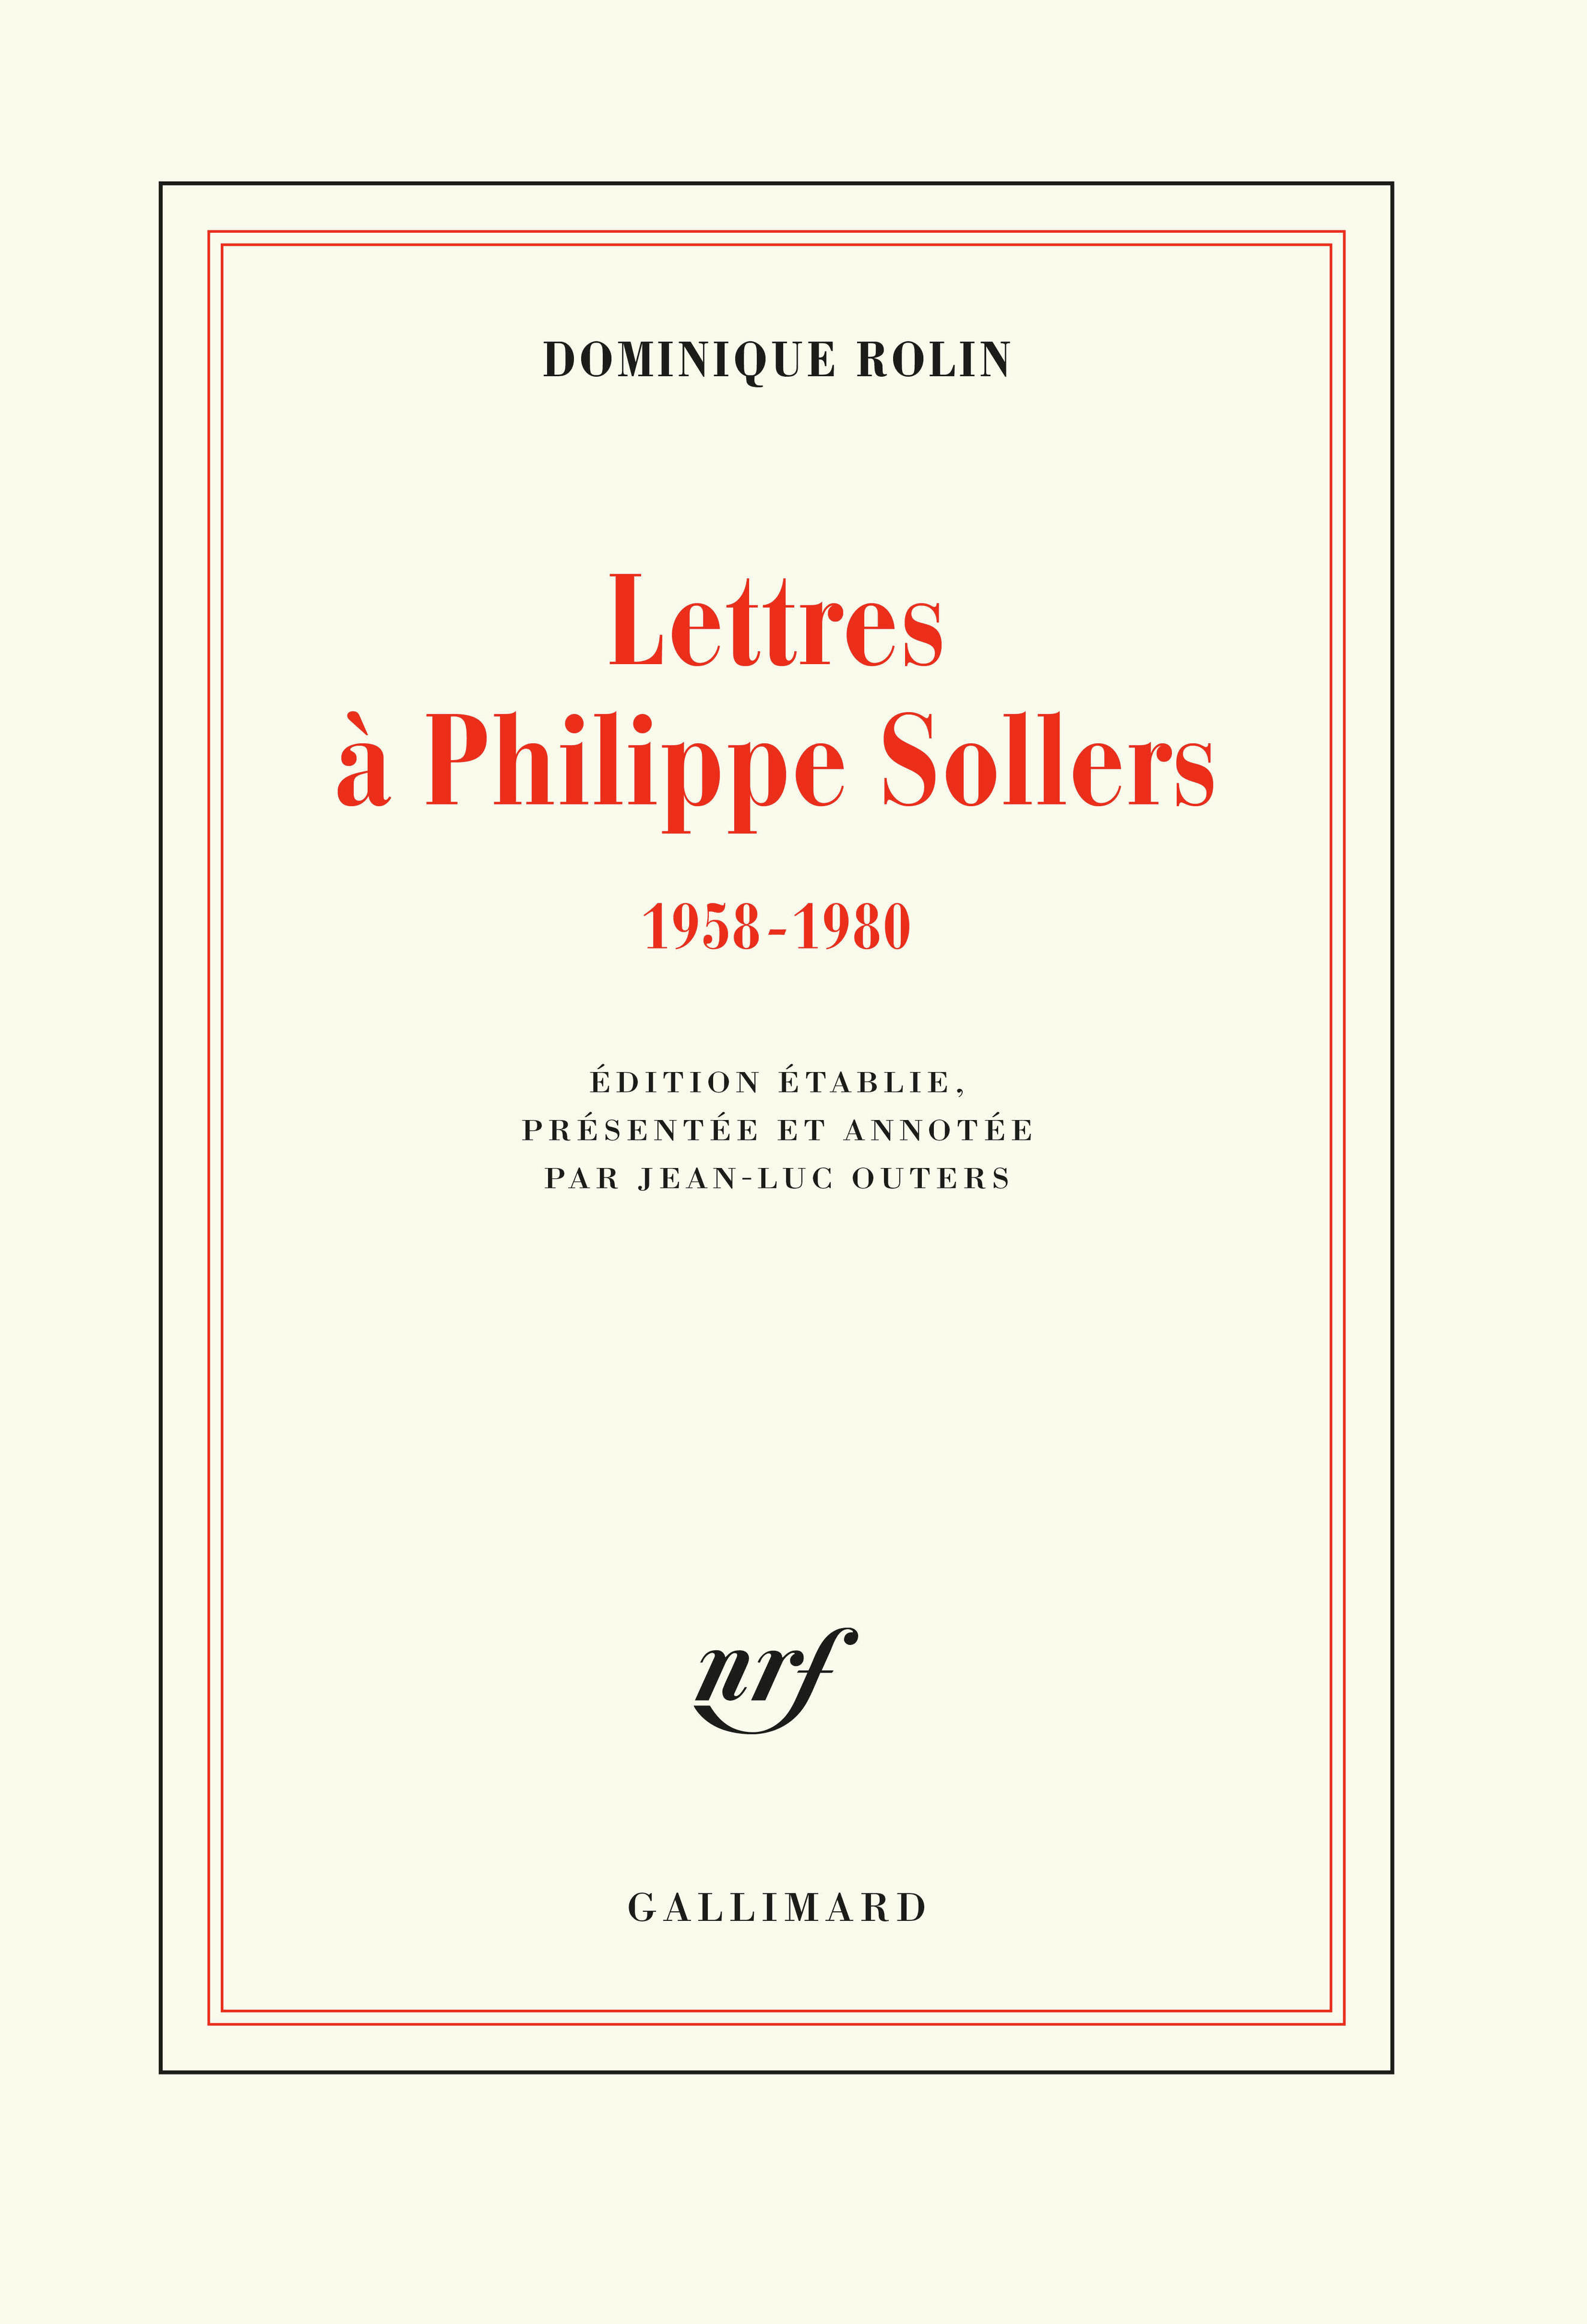 LETTRES A PHILIPPE SOLLERS - (1958-1980)